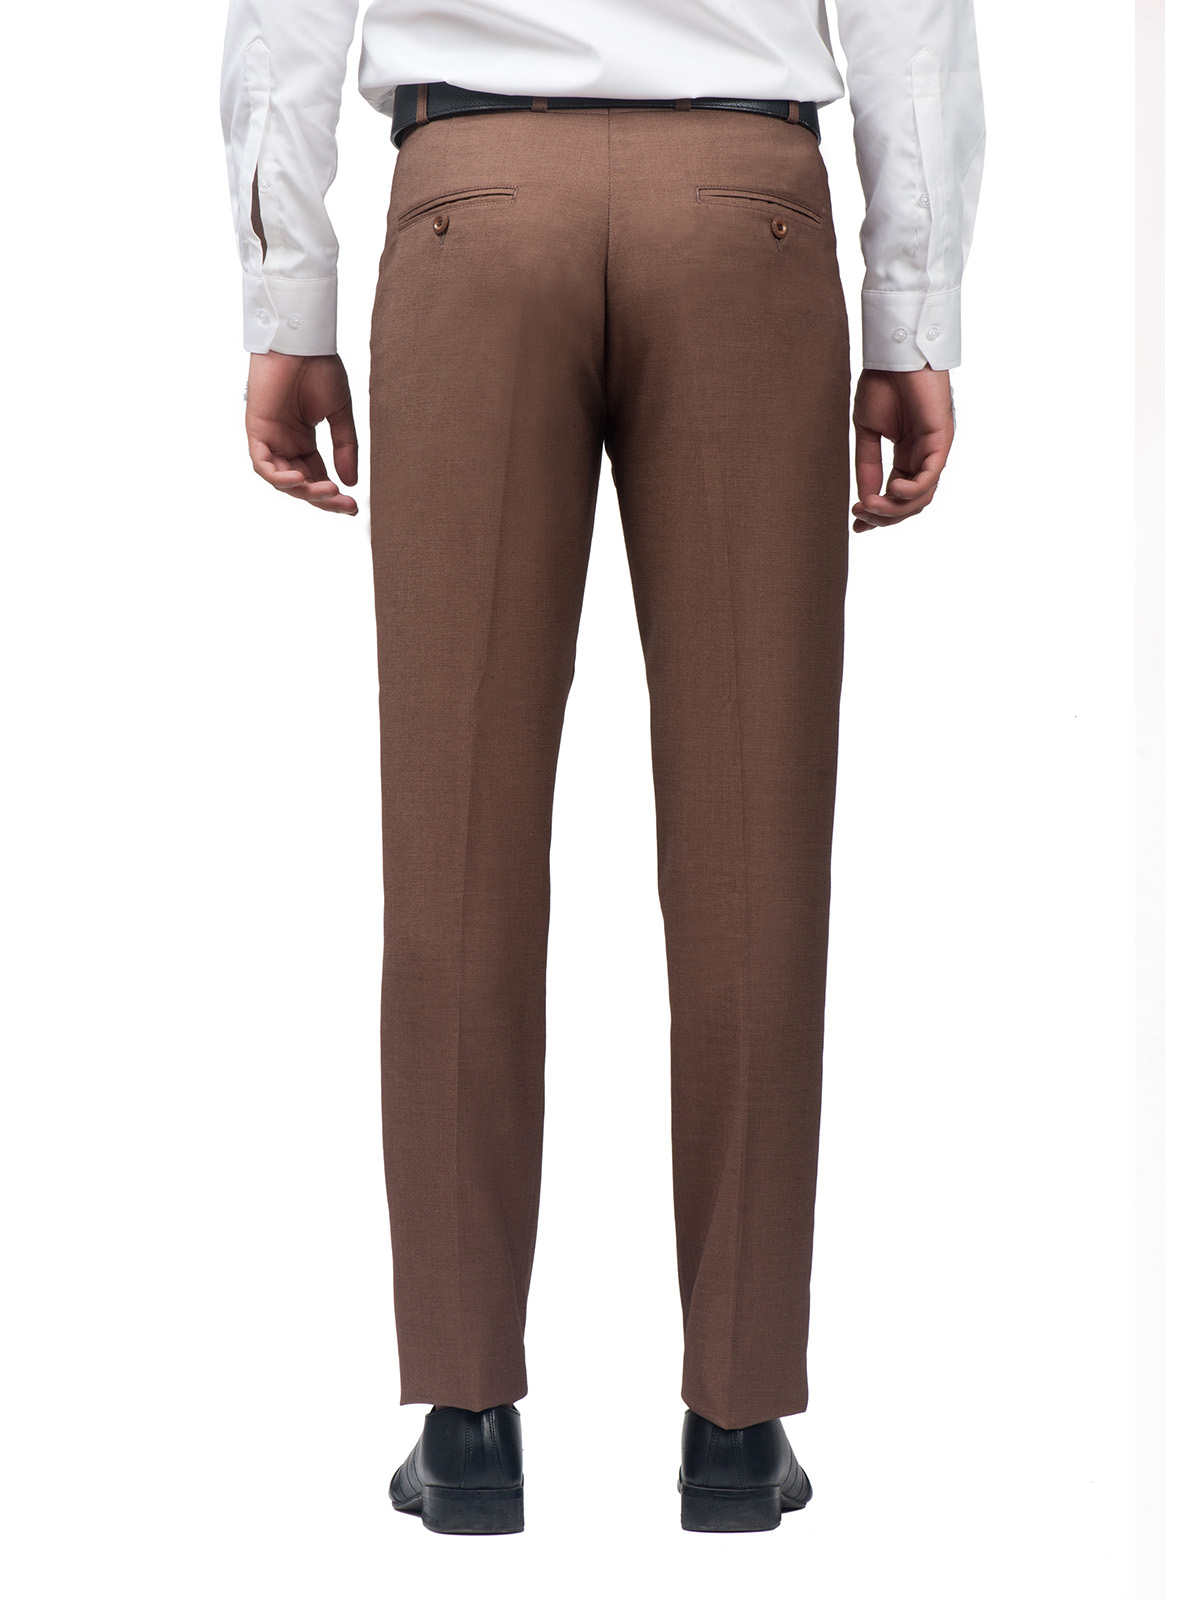 Chocolate Brown Formal Dress Trouser